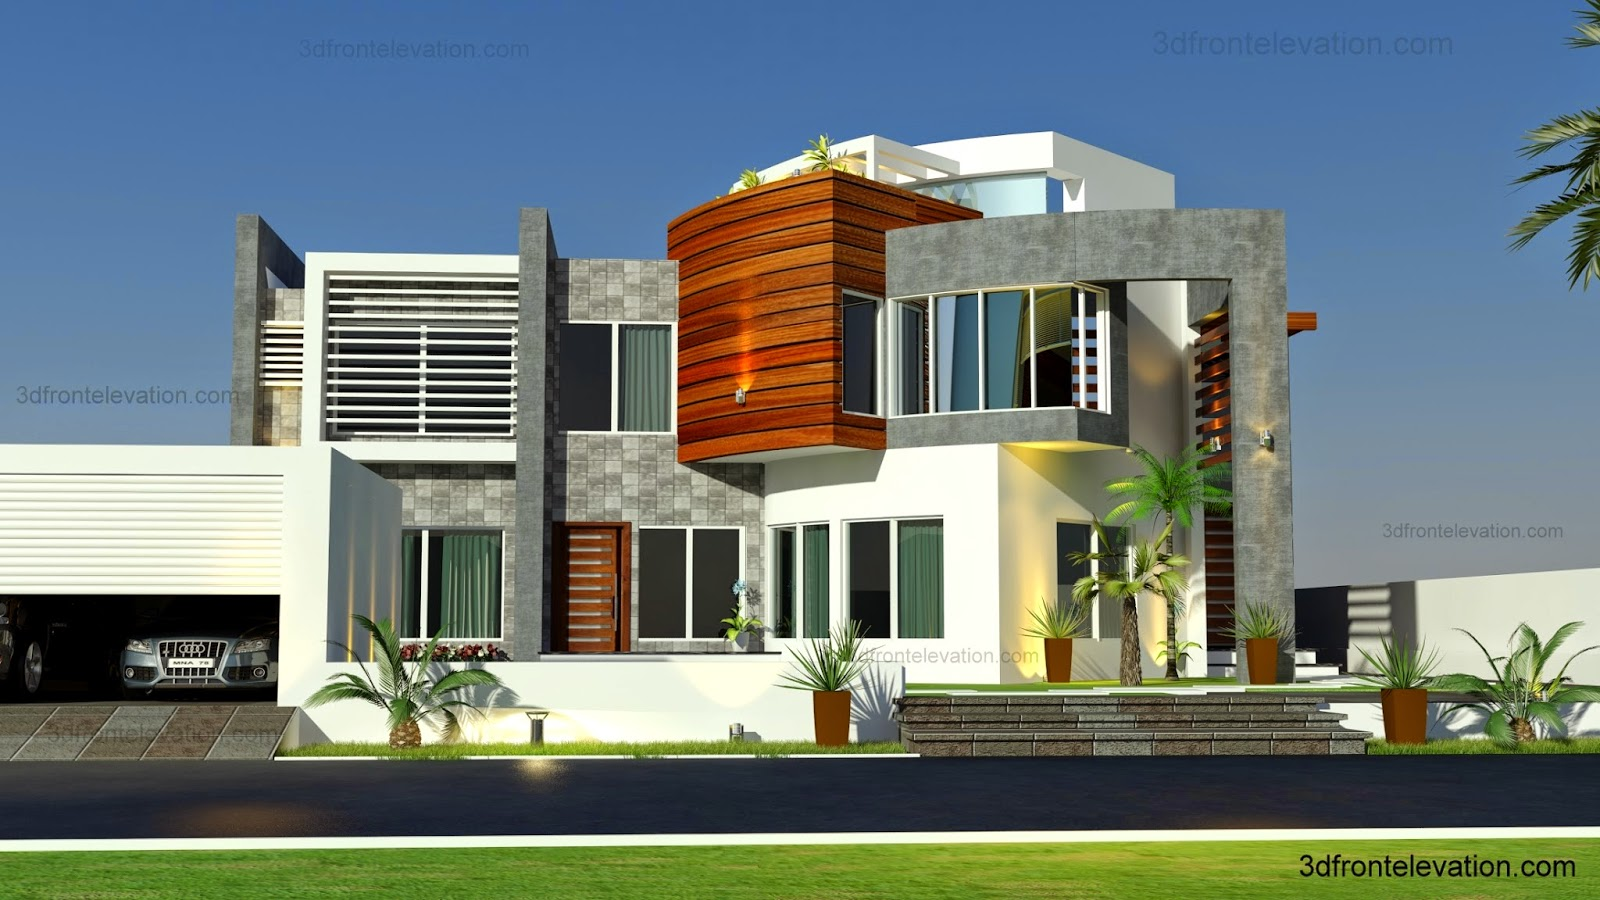 3d front oman modern contemporary villa 3d front elevation 2015. Black Bedroom Furniture Sets. Home Design Ideas